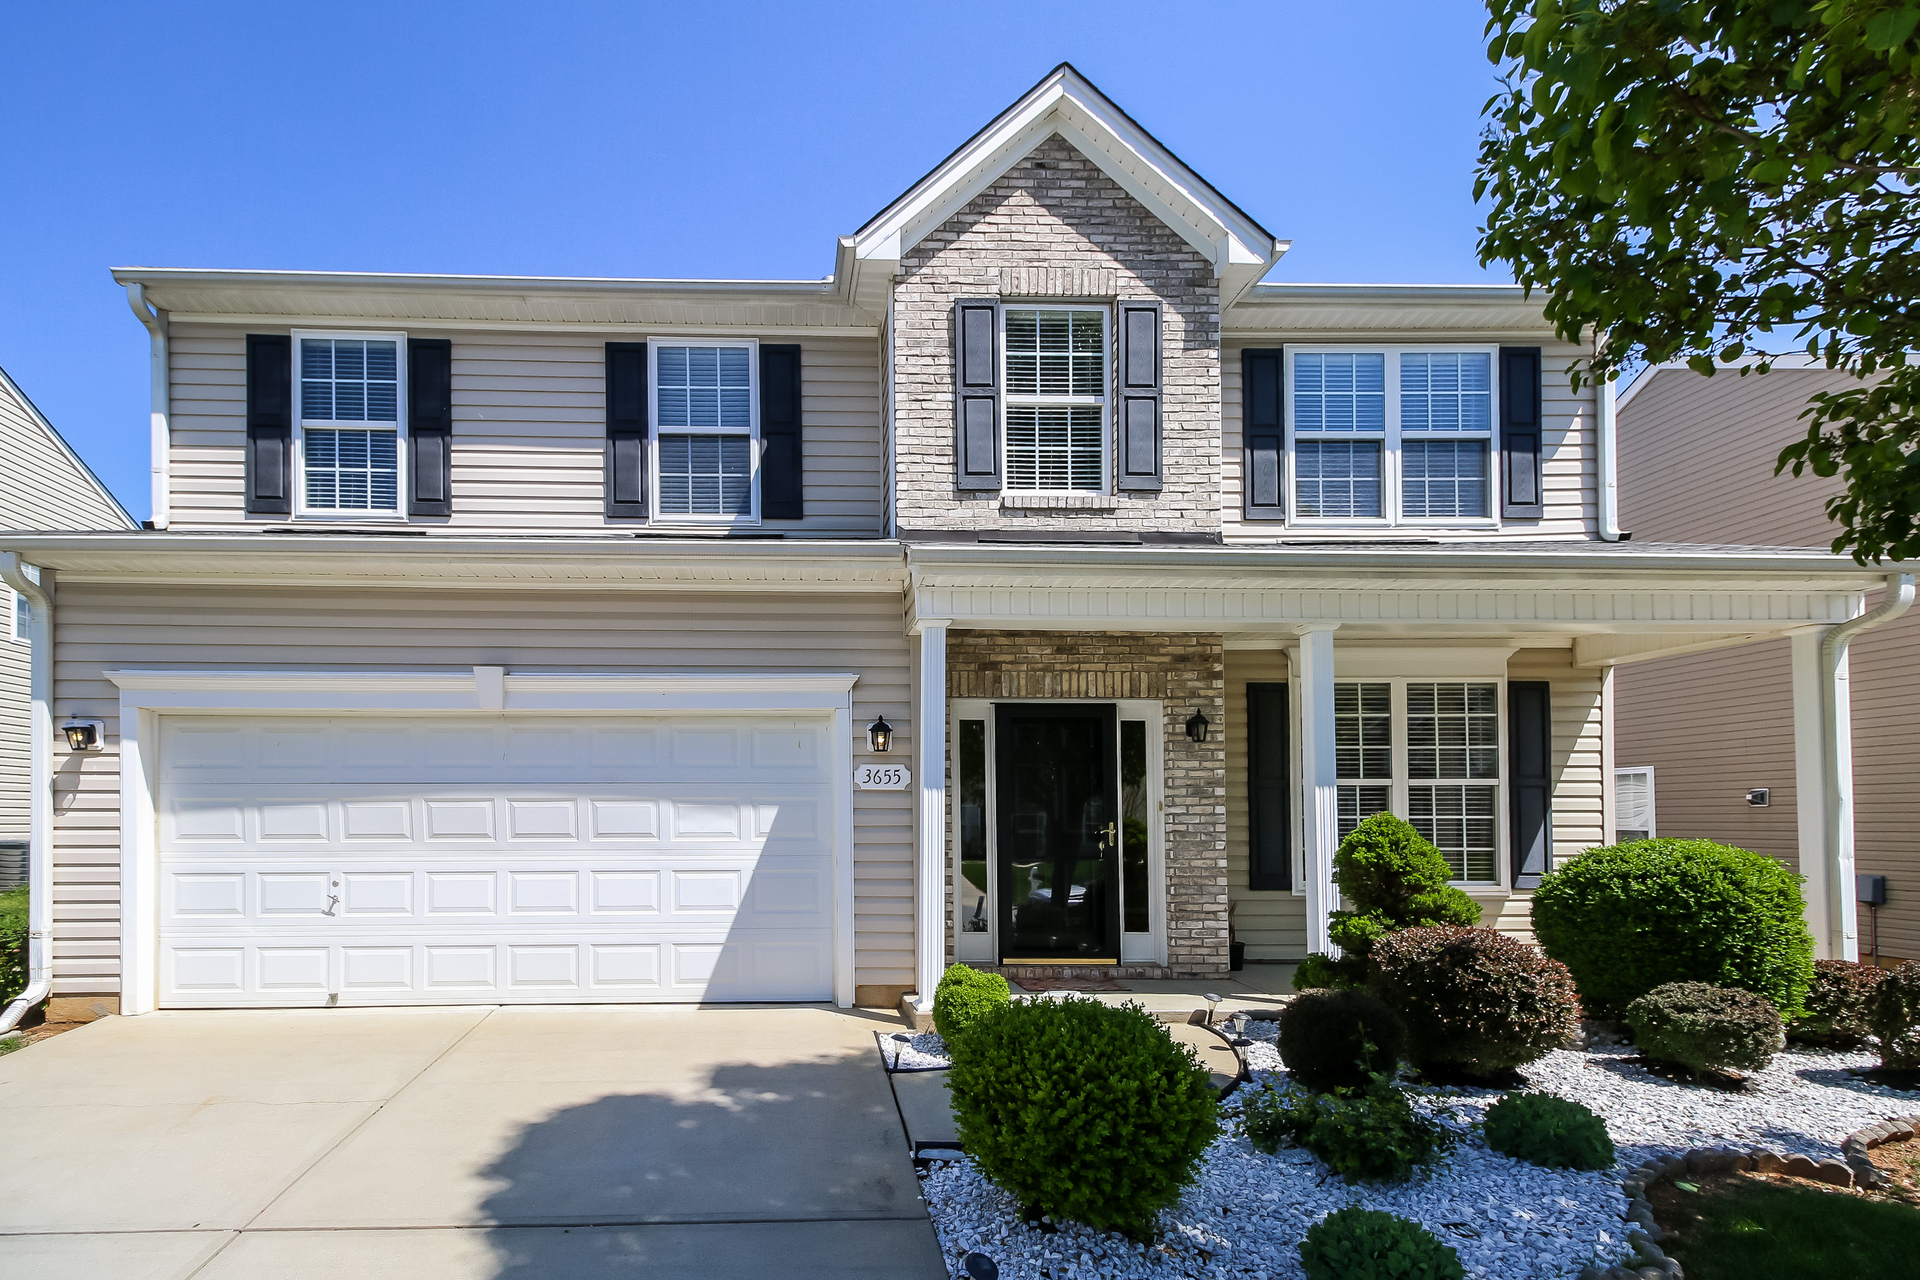 Photo of 3655 Village Springs Dr, High Point, NC, 27265